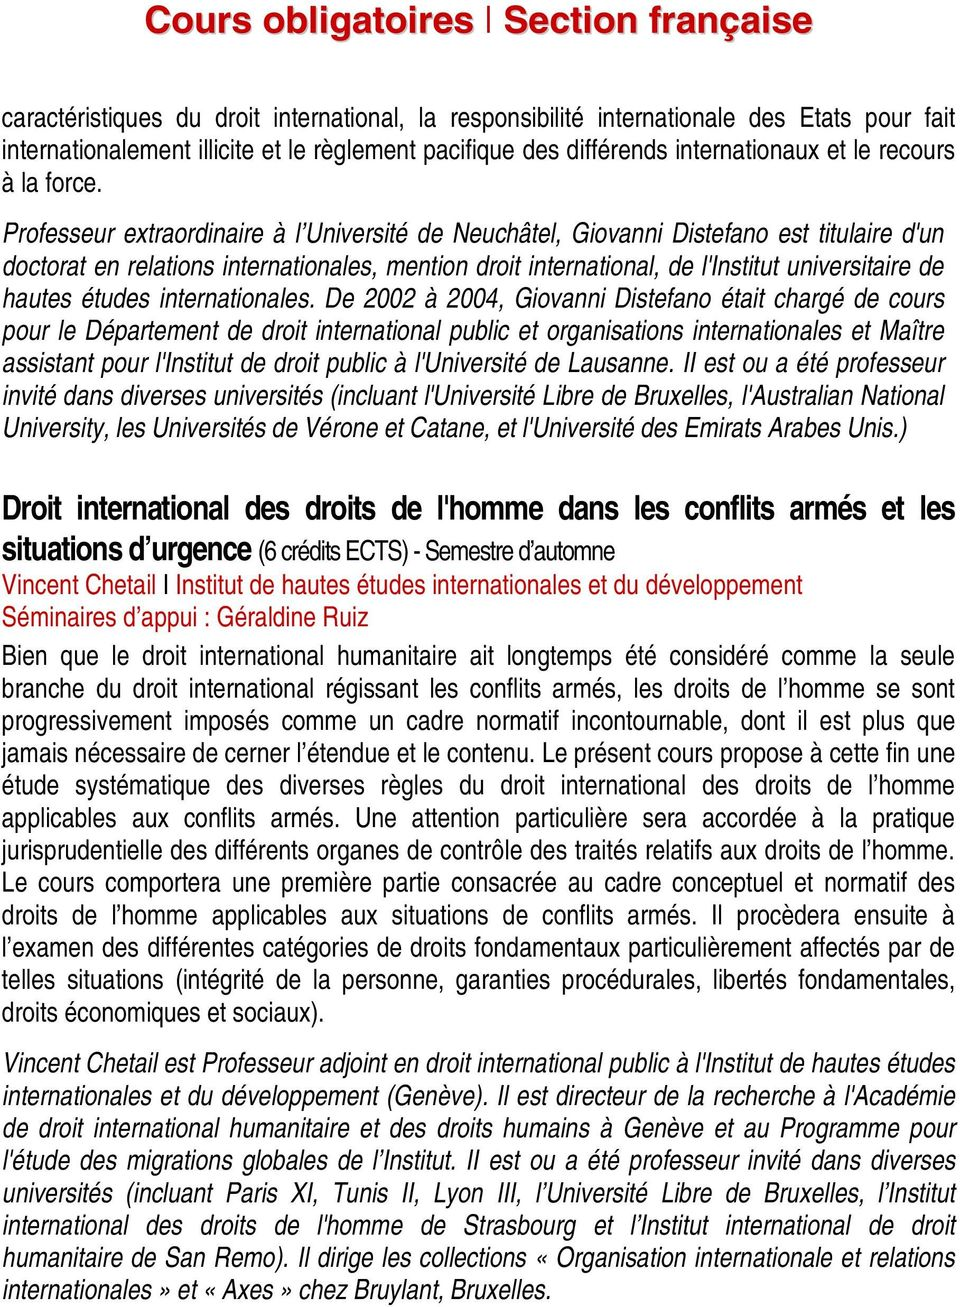 Professeur extraordinaire à l Université de Neuchâtel, Giovanni Distefano est titulaire d'un doctorat en relations internationales, mention droit international, de l'institut universitaire de hautes